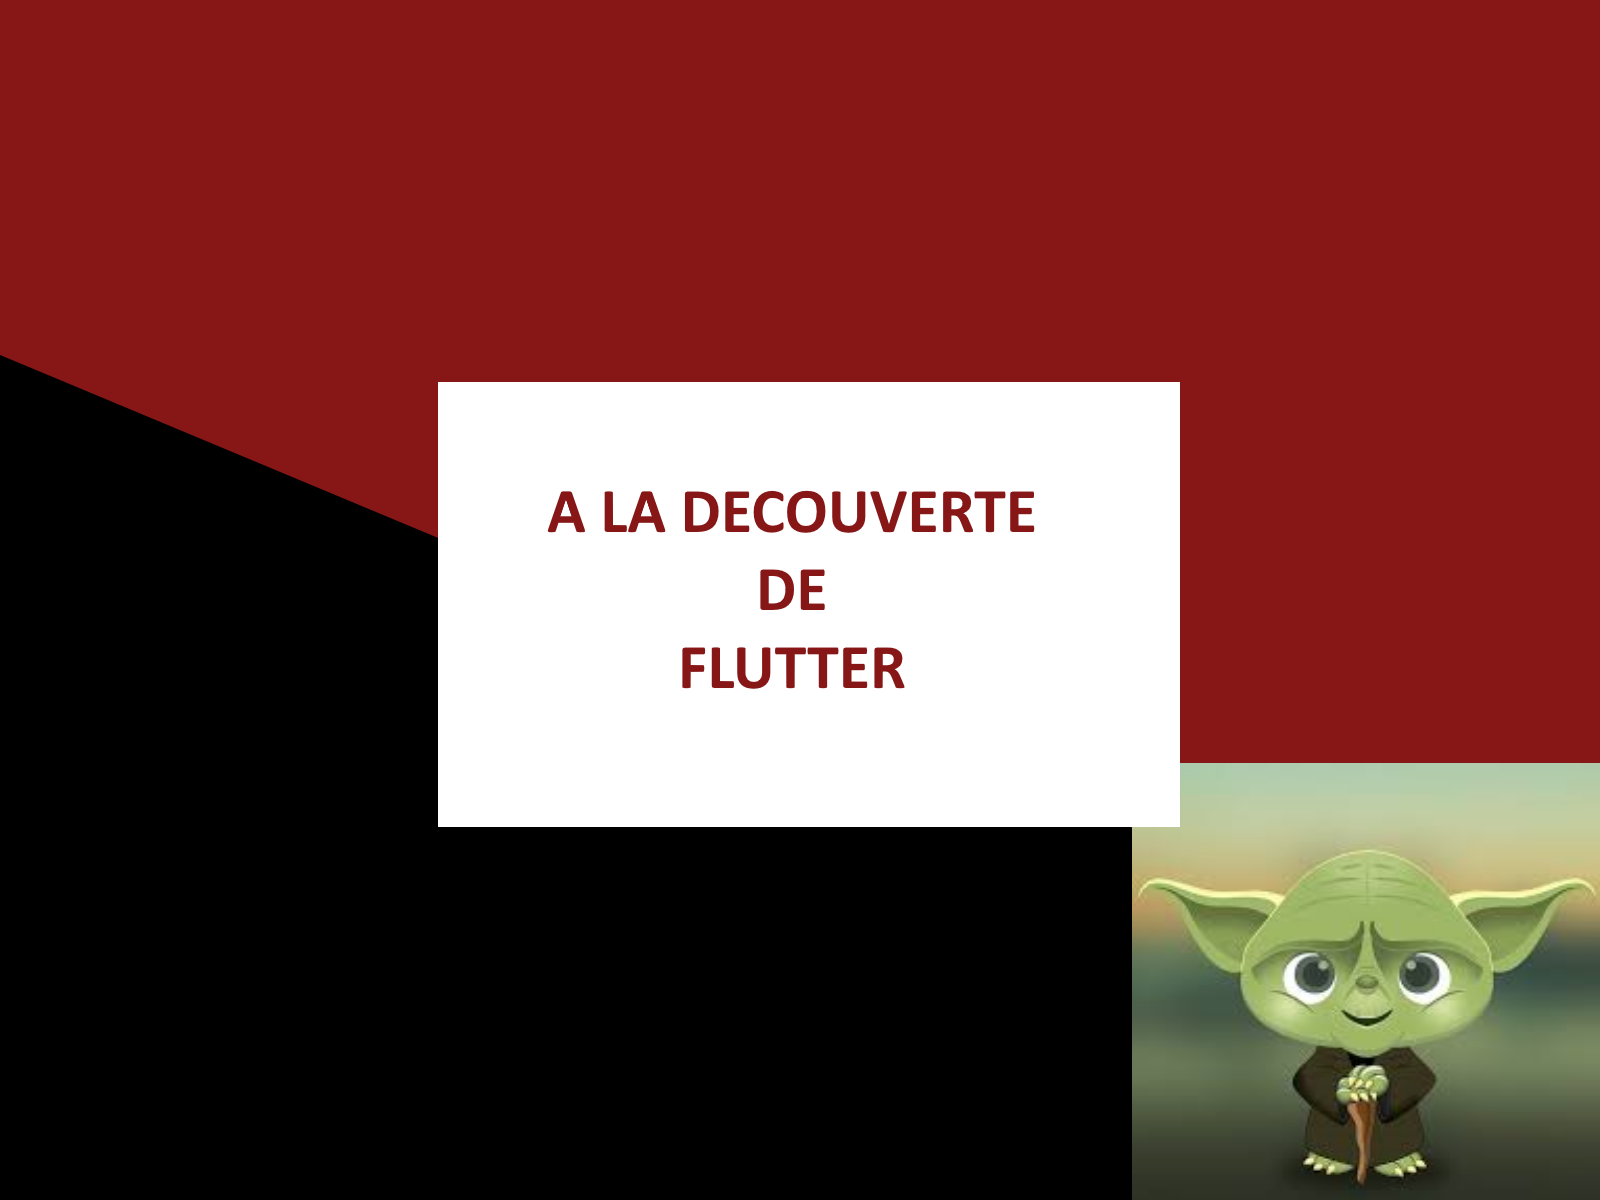 A LA DECOUVERTE DE FLUTTER